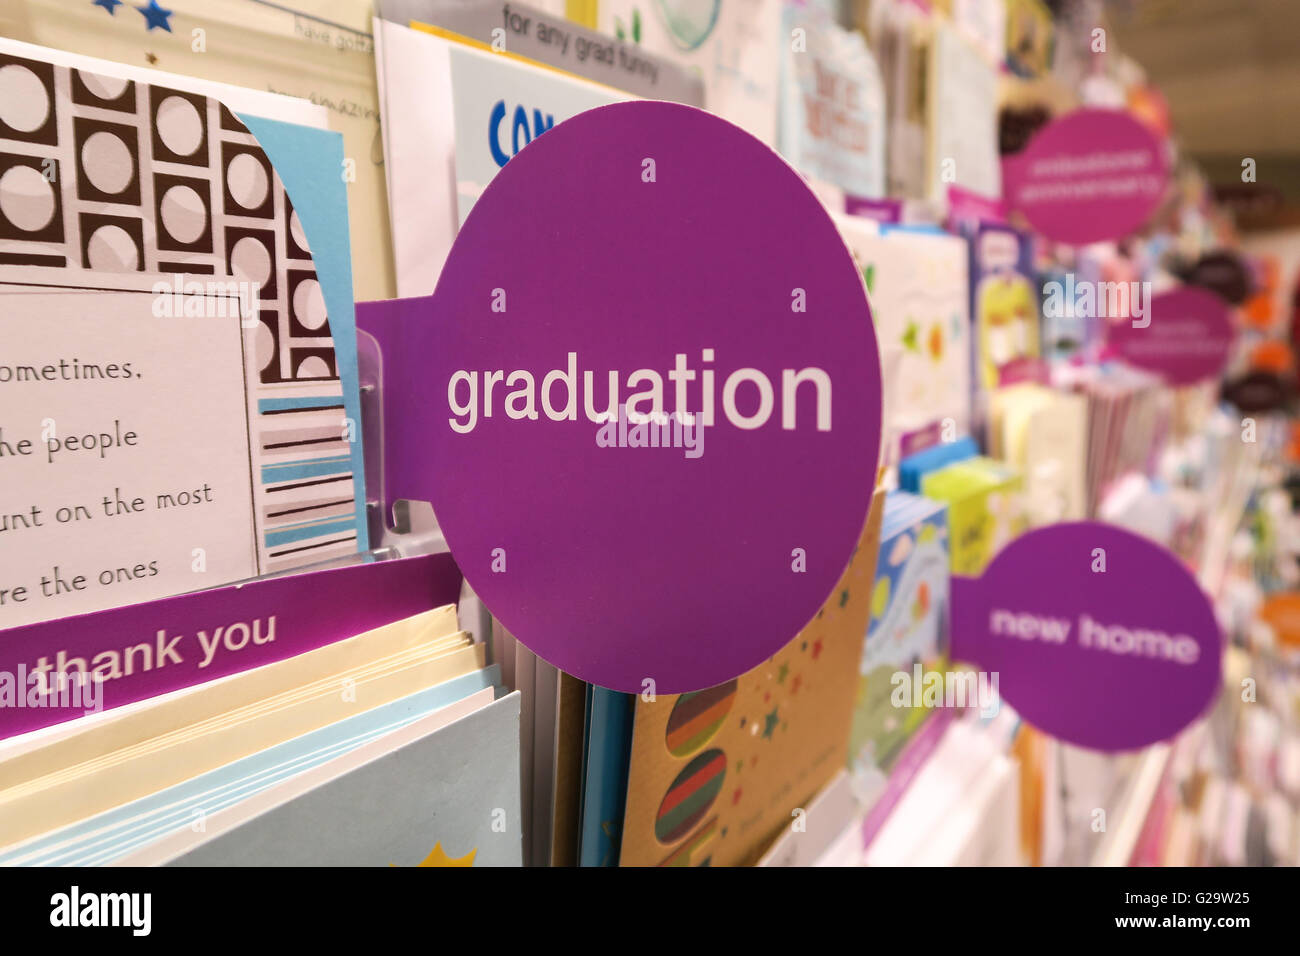 Greeting Cards Shelf Stock Photos & Greeting Cards Shelf Stock ...